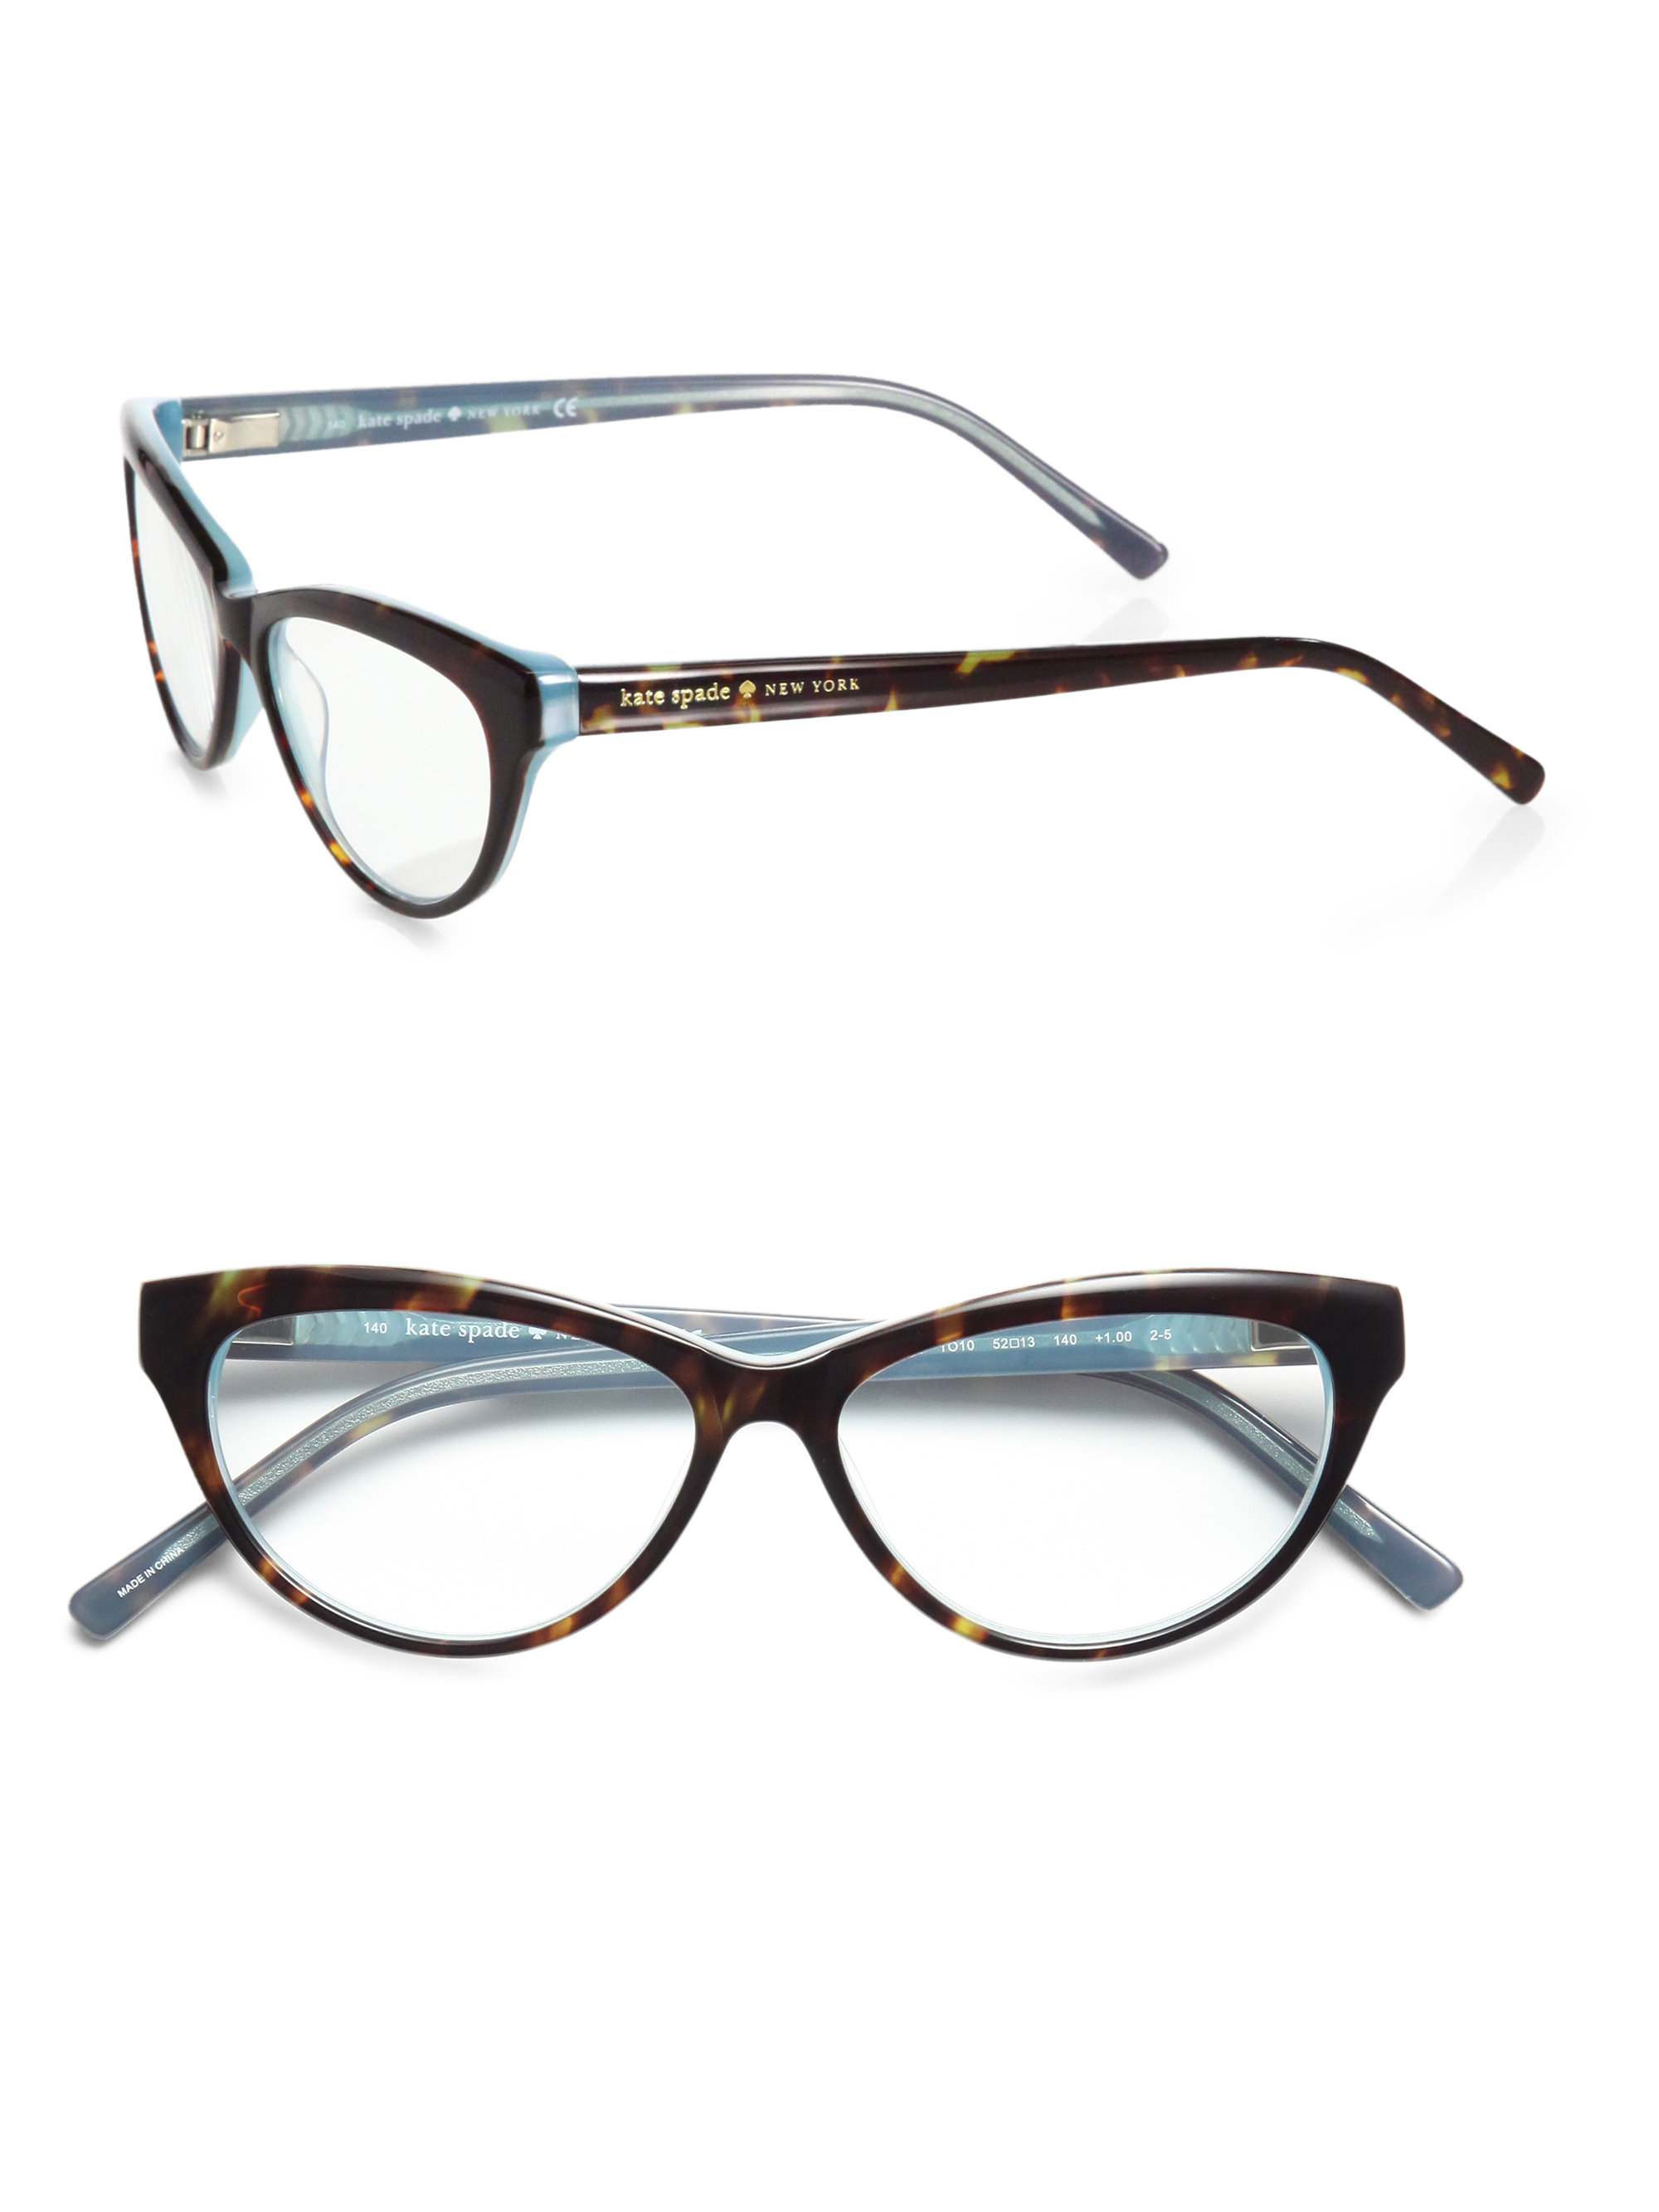 Kate Spade Tortoise Shell Glasses Frames : Kate spade new york Abena CatS-Eye Reading Glasses in ...